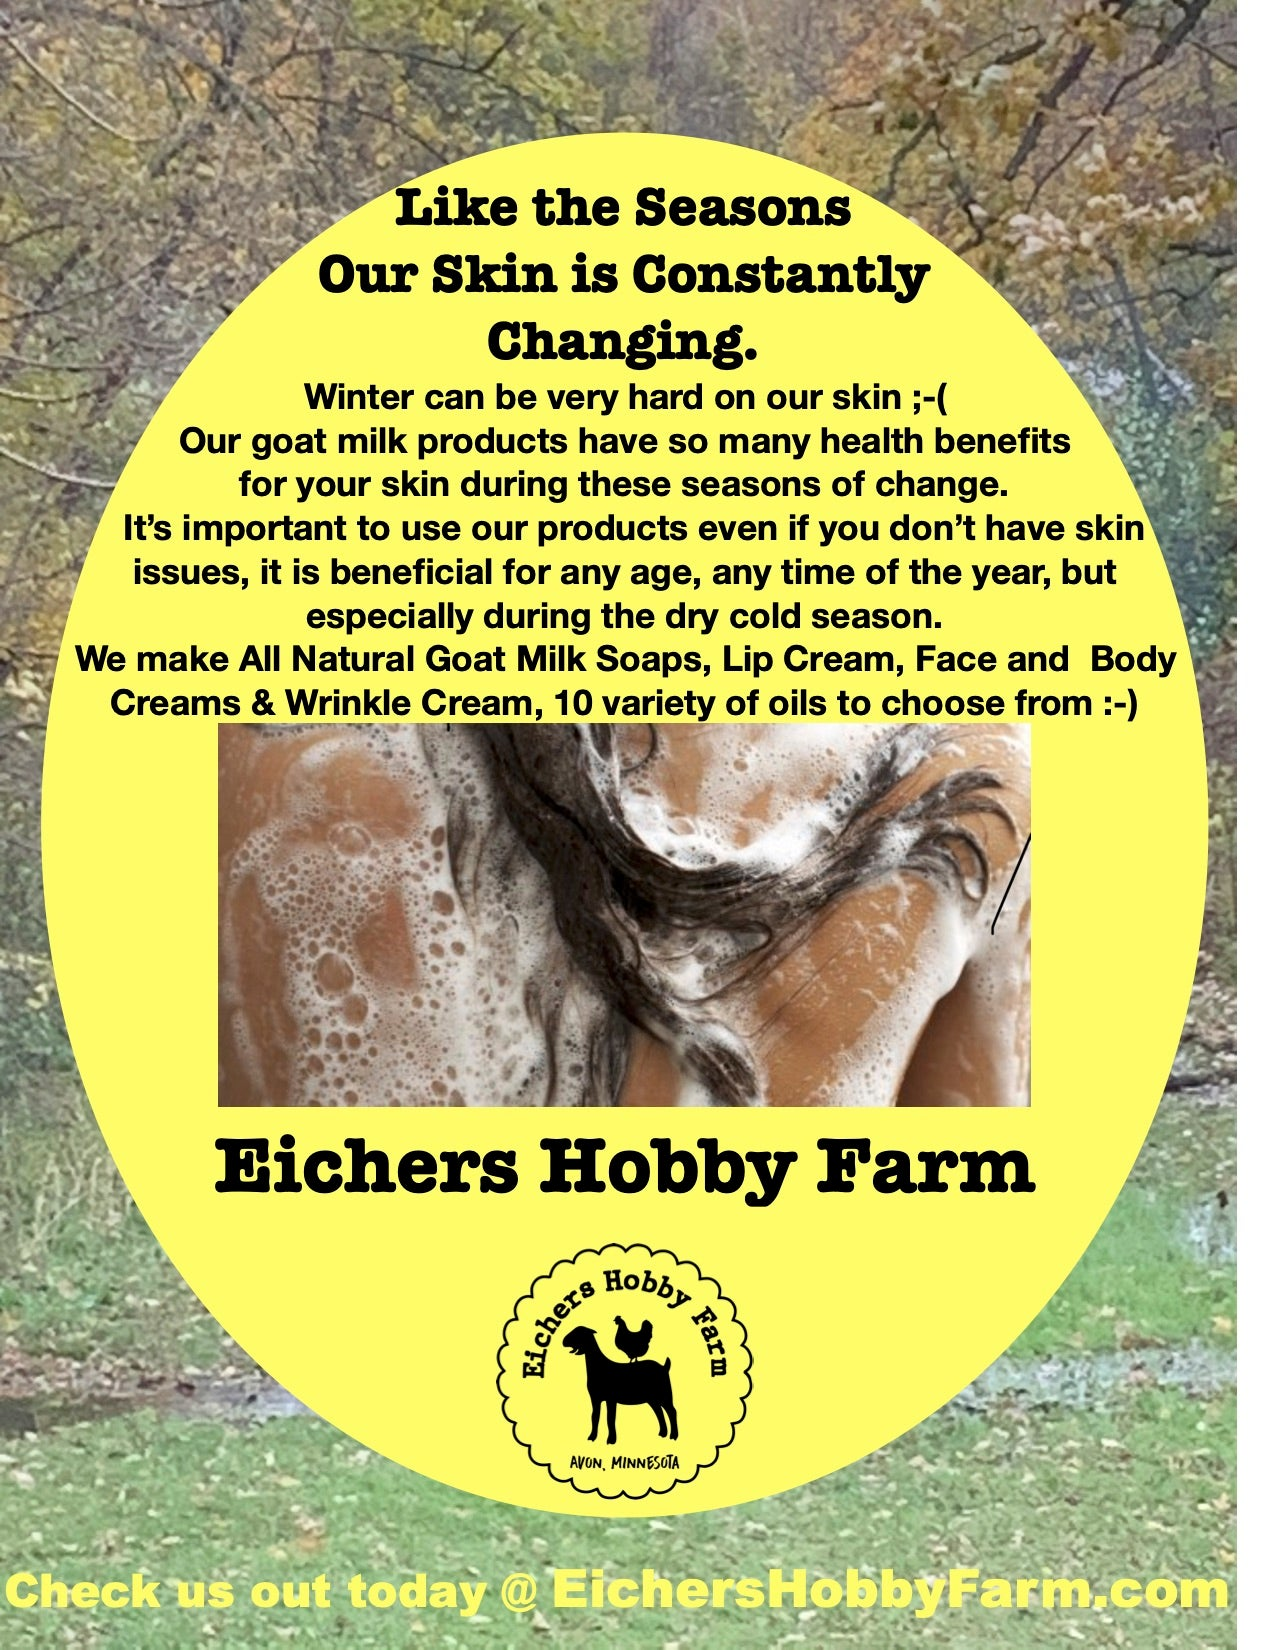 As the season change so does our skin, EHF All Natural Goat Milk Products will take care of your Largest organ, so you don't have to worry and just enjoy beautiful Healthy skin all year round!